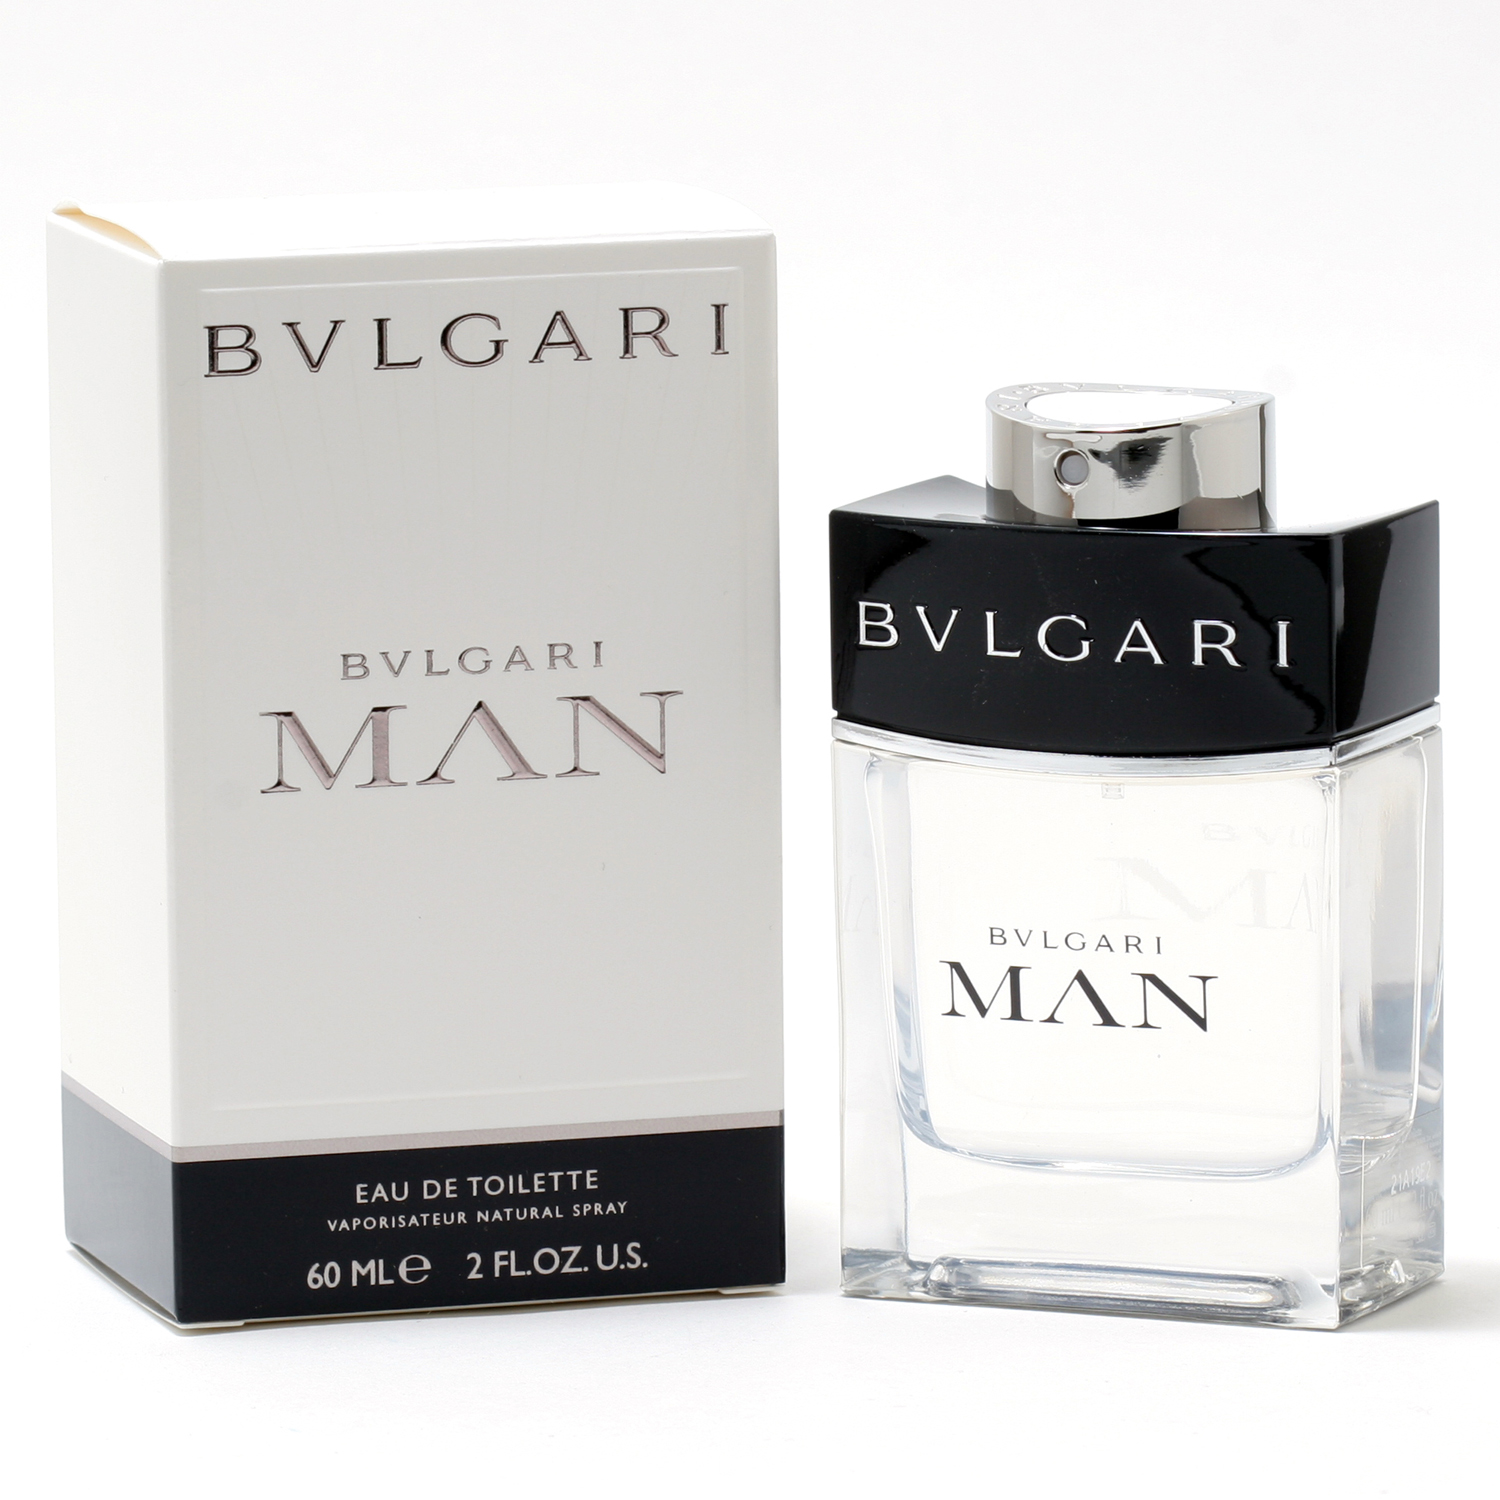 BVLGARI MAN – EDT SPRAY - Bvlgari - Perfume Discount